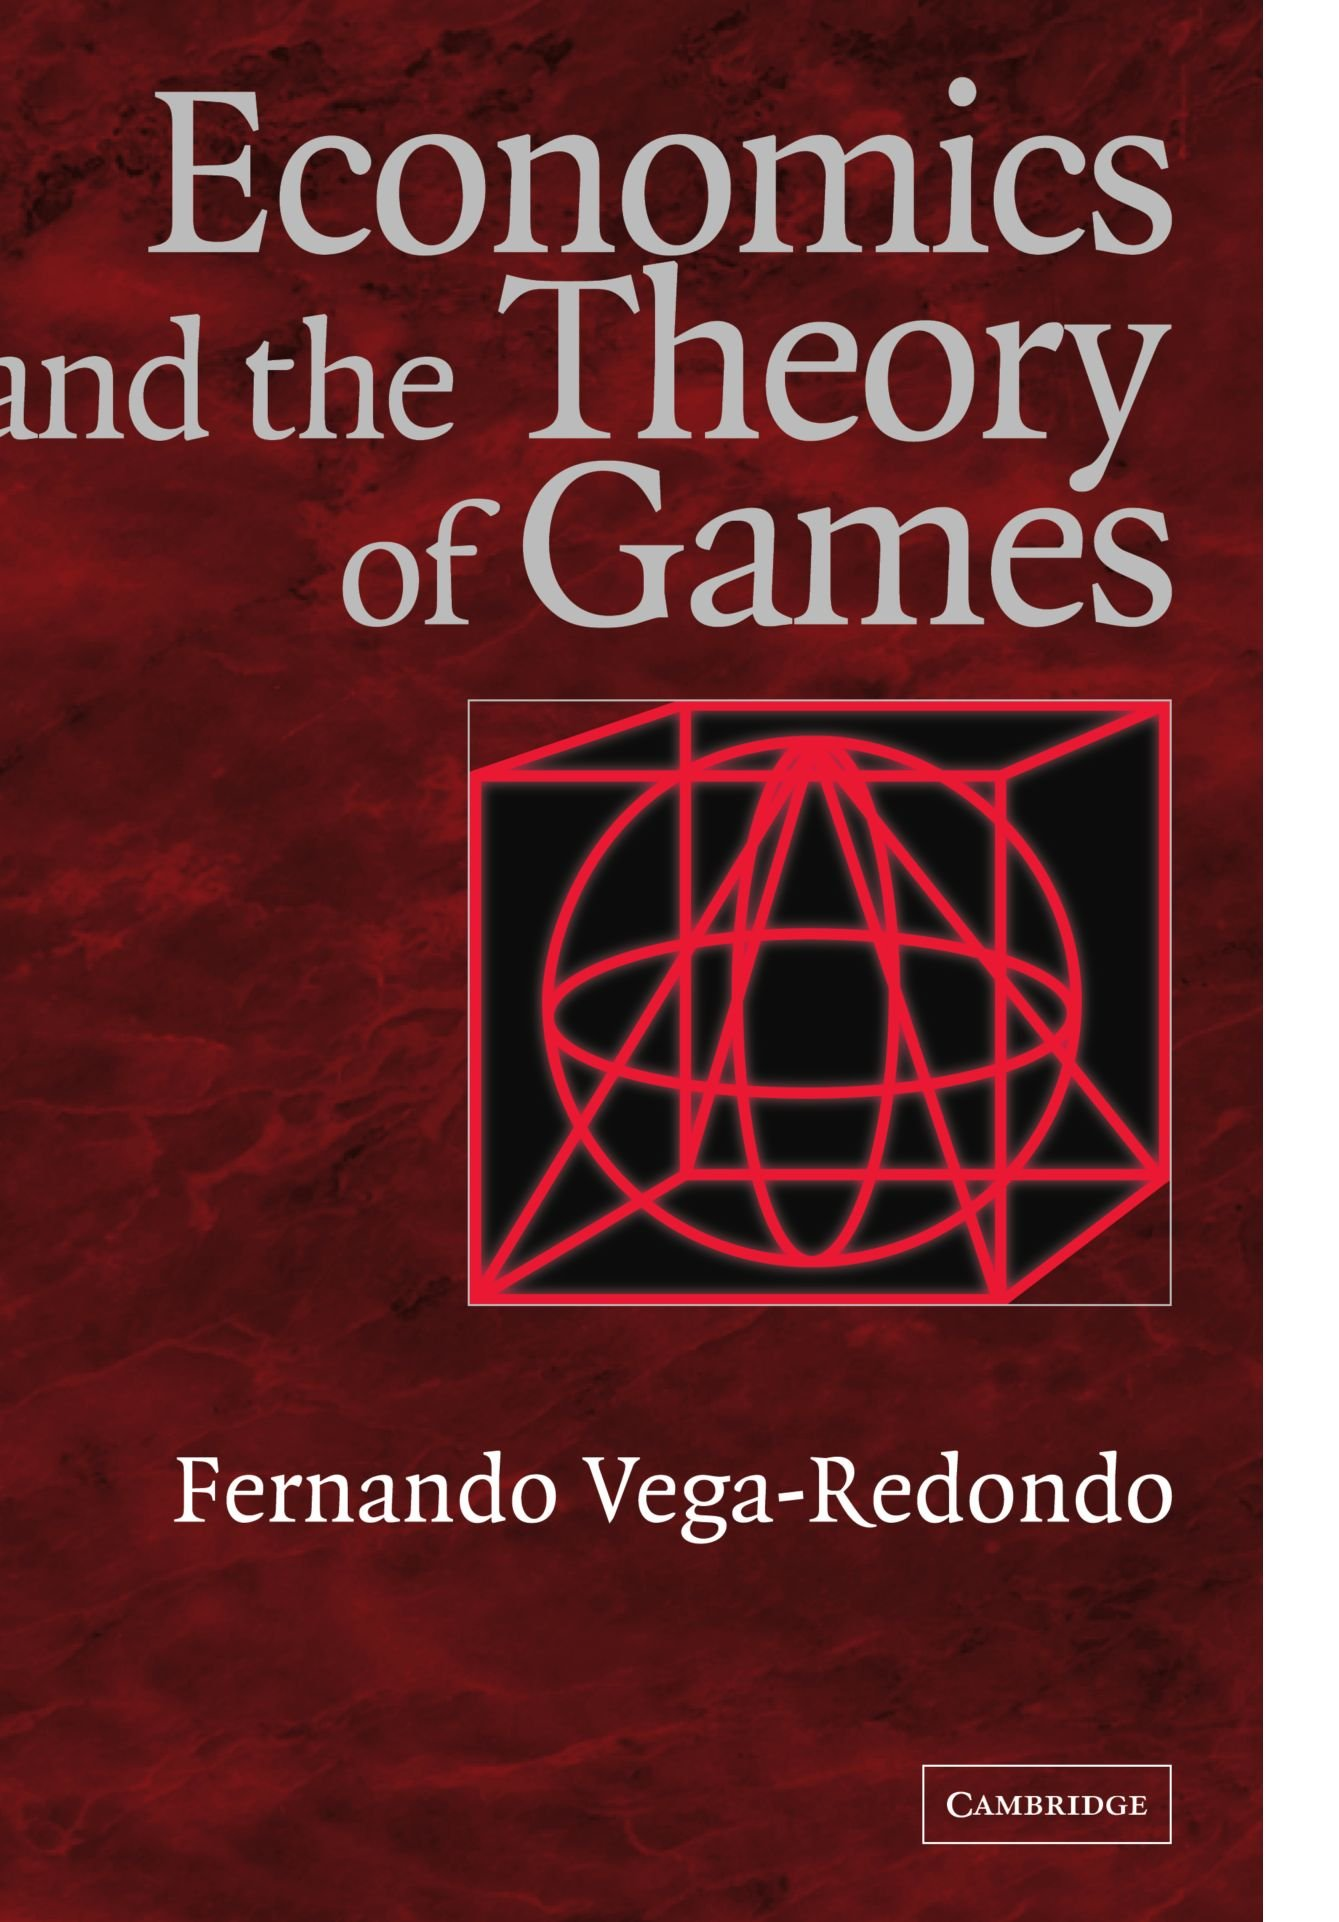 Economics and the Theory of Games